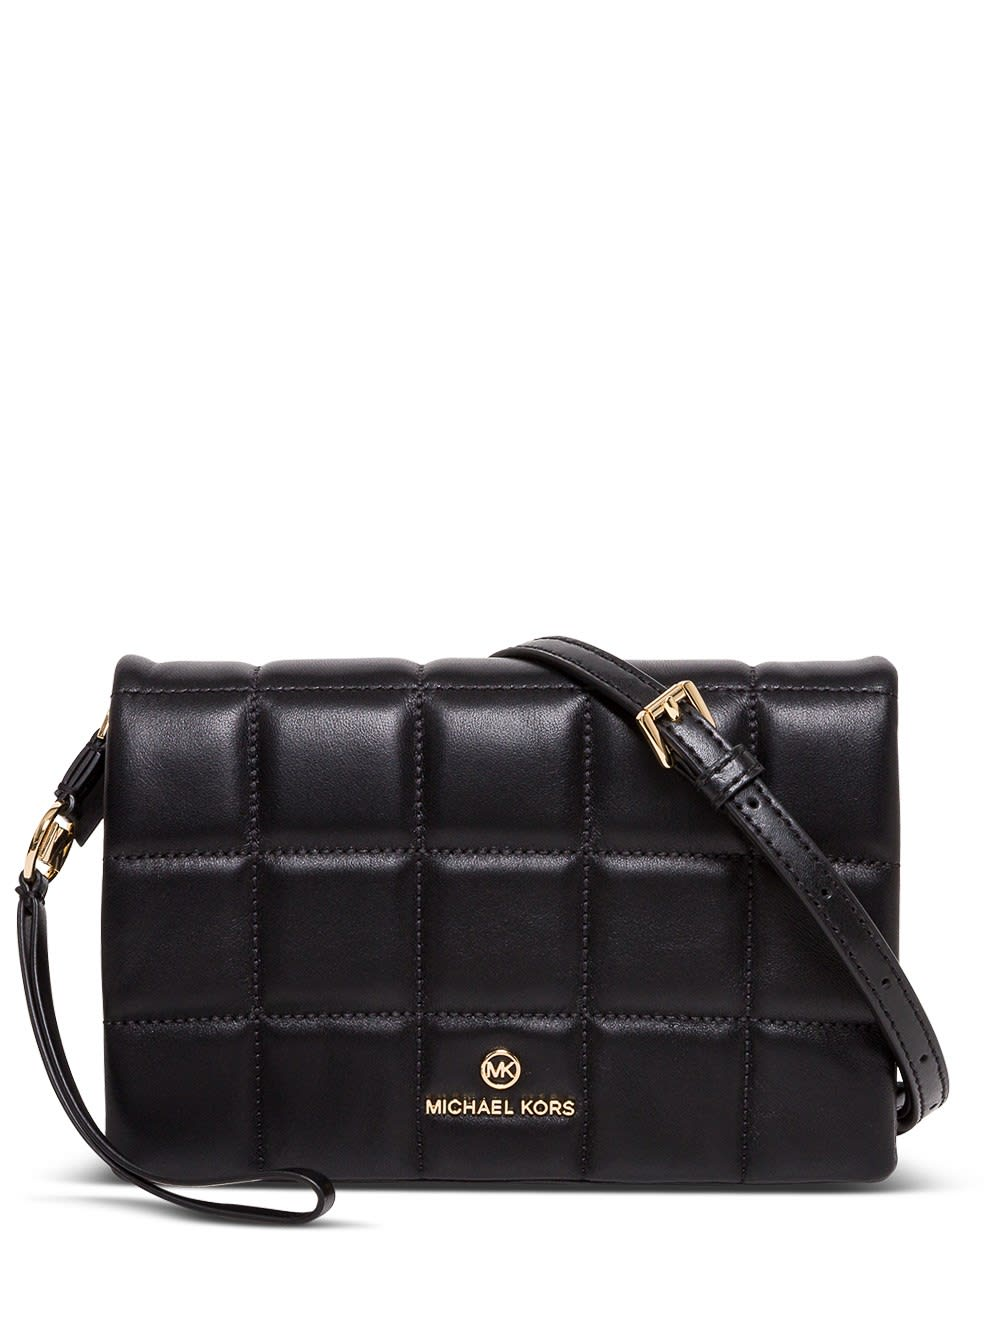 Michael Kors Jet Set Charm Medium Crossbody Bag In Quilted Leather